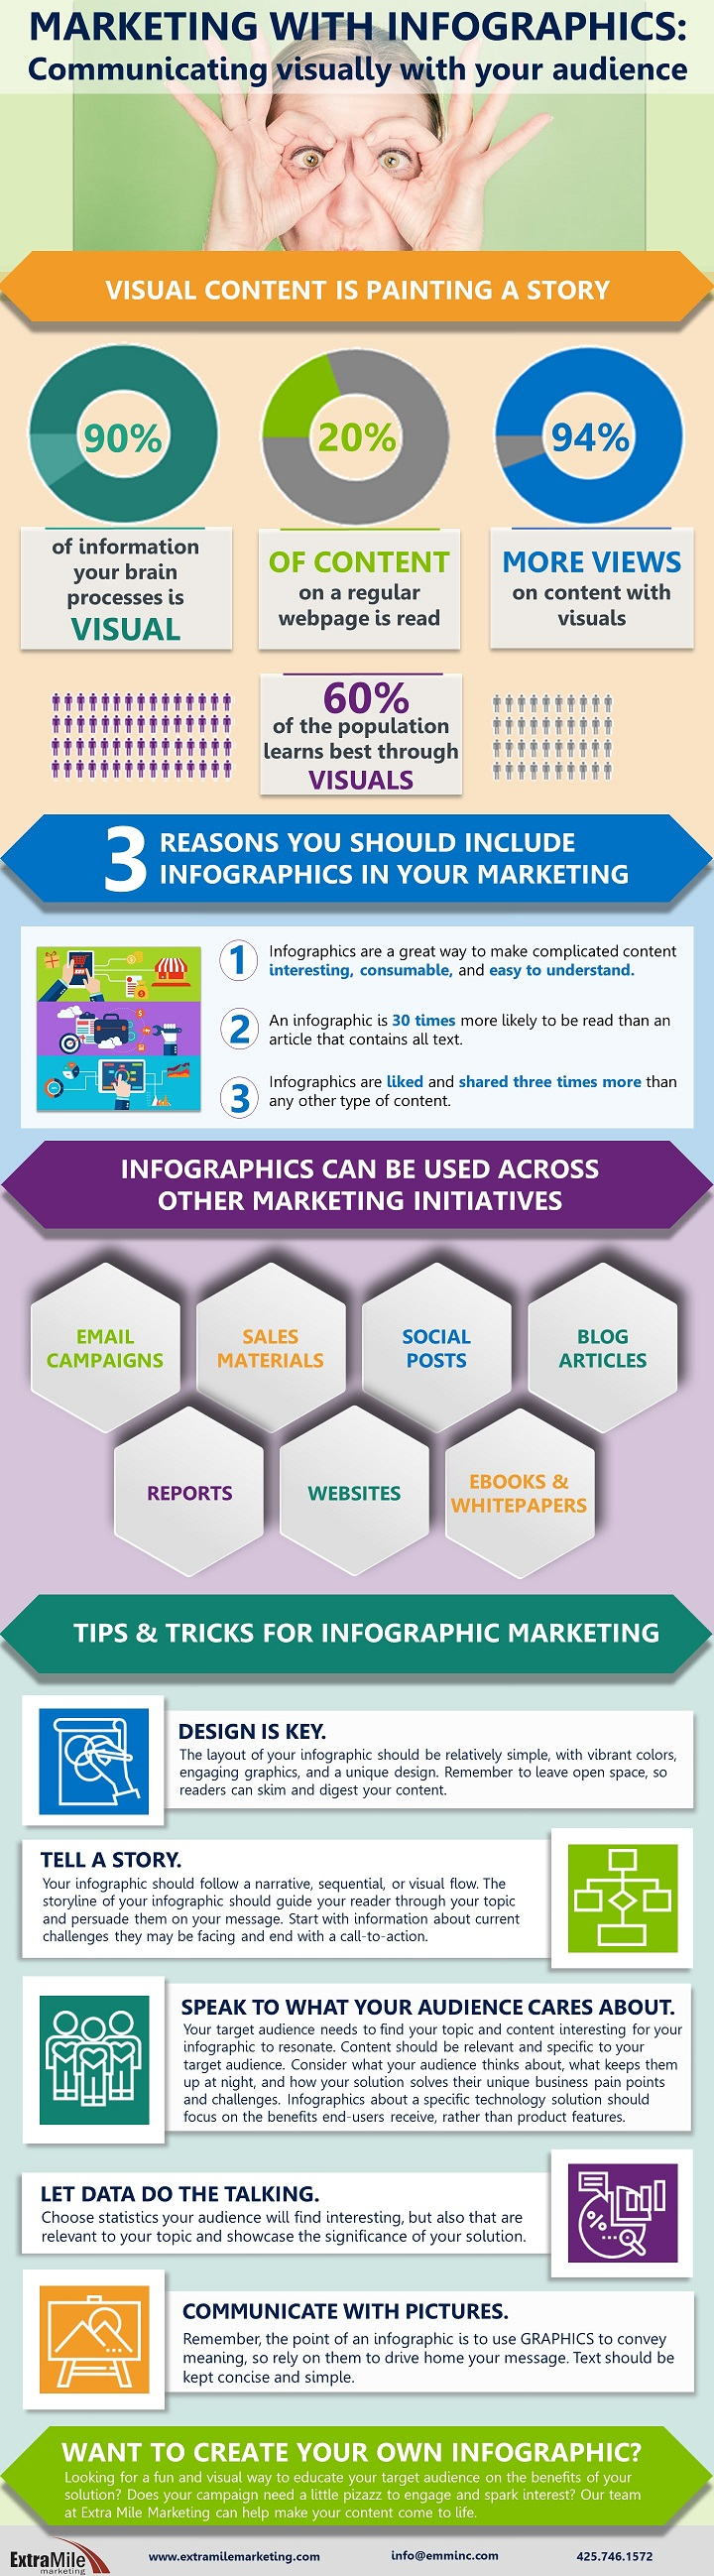 Articulate storyline infographic